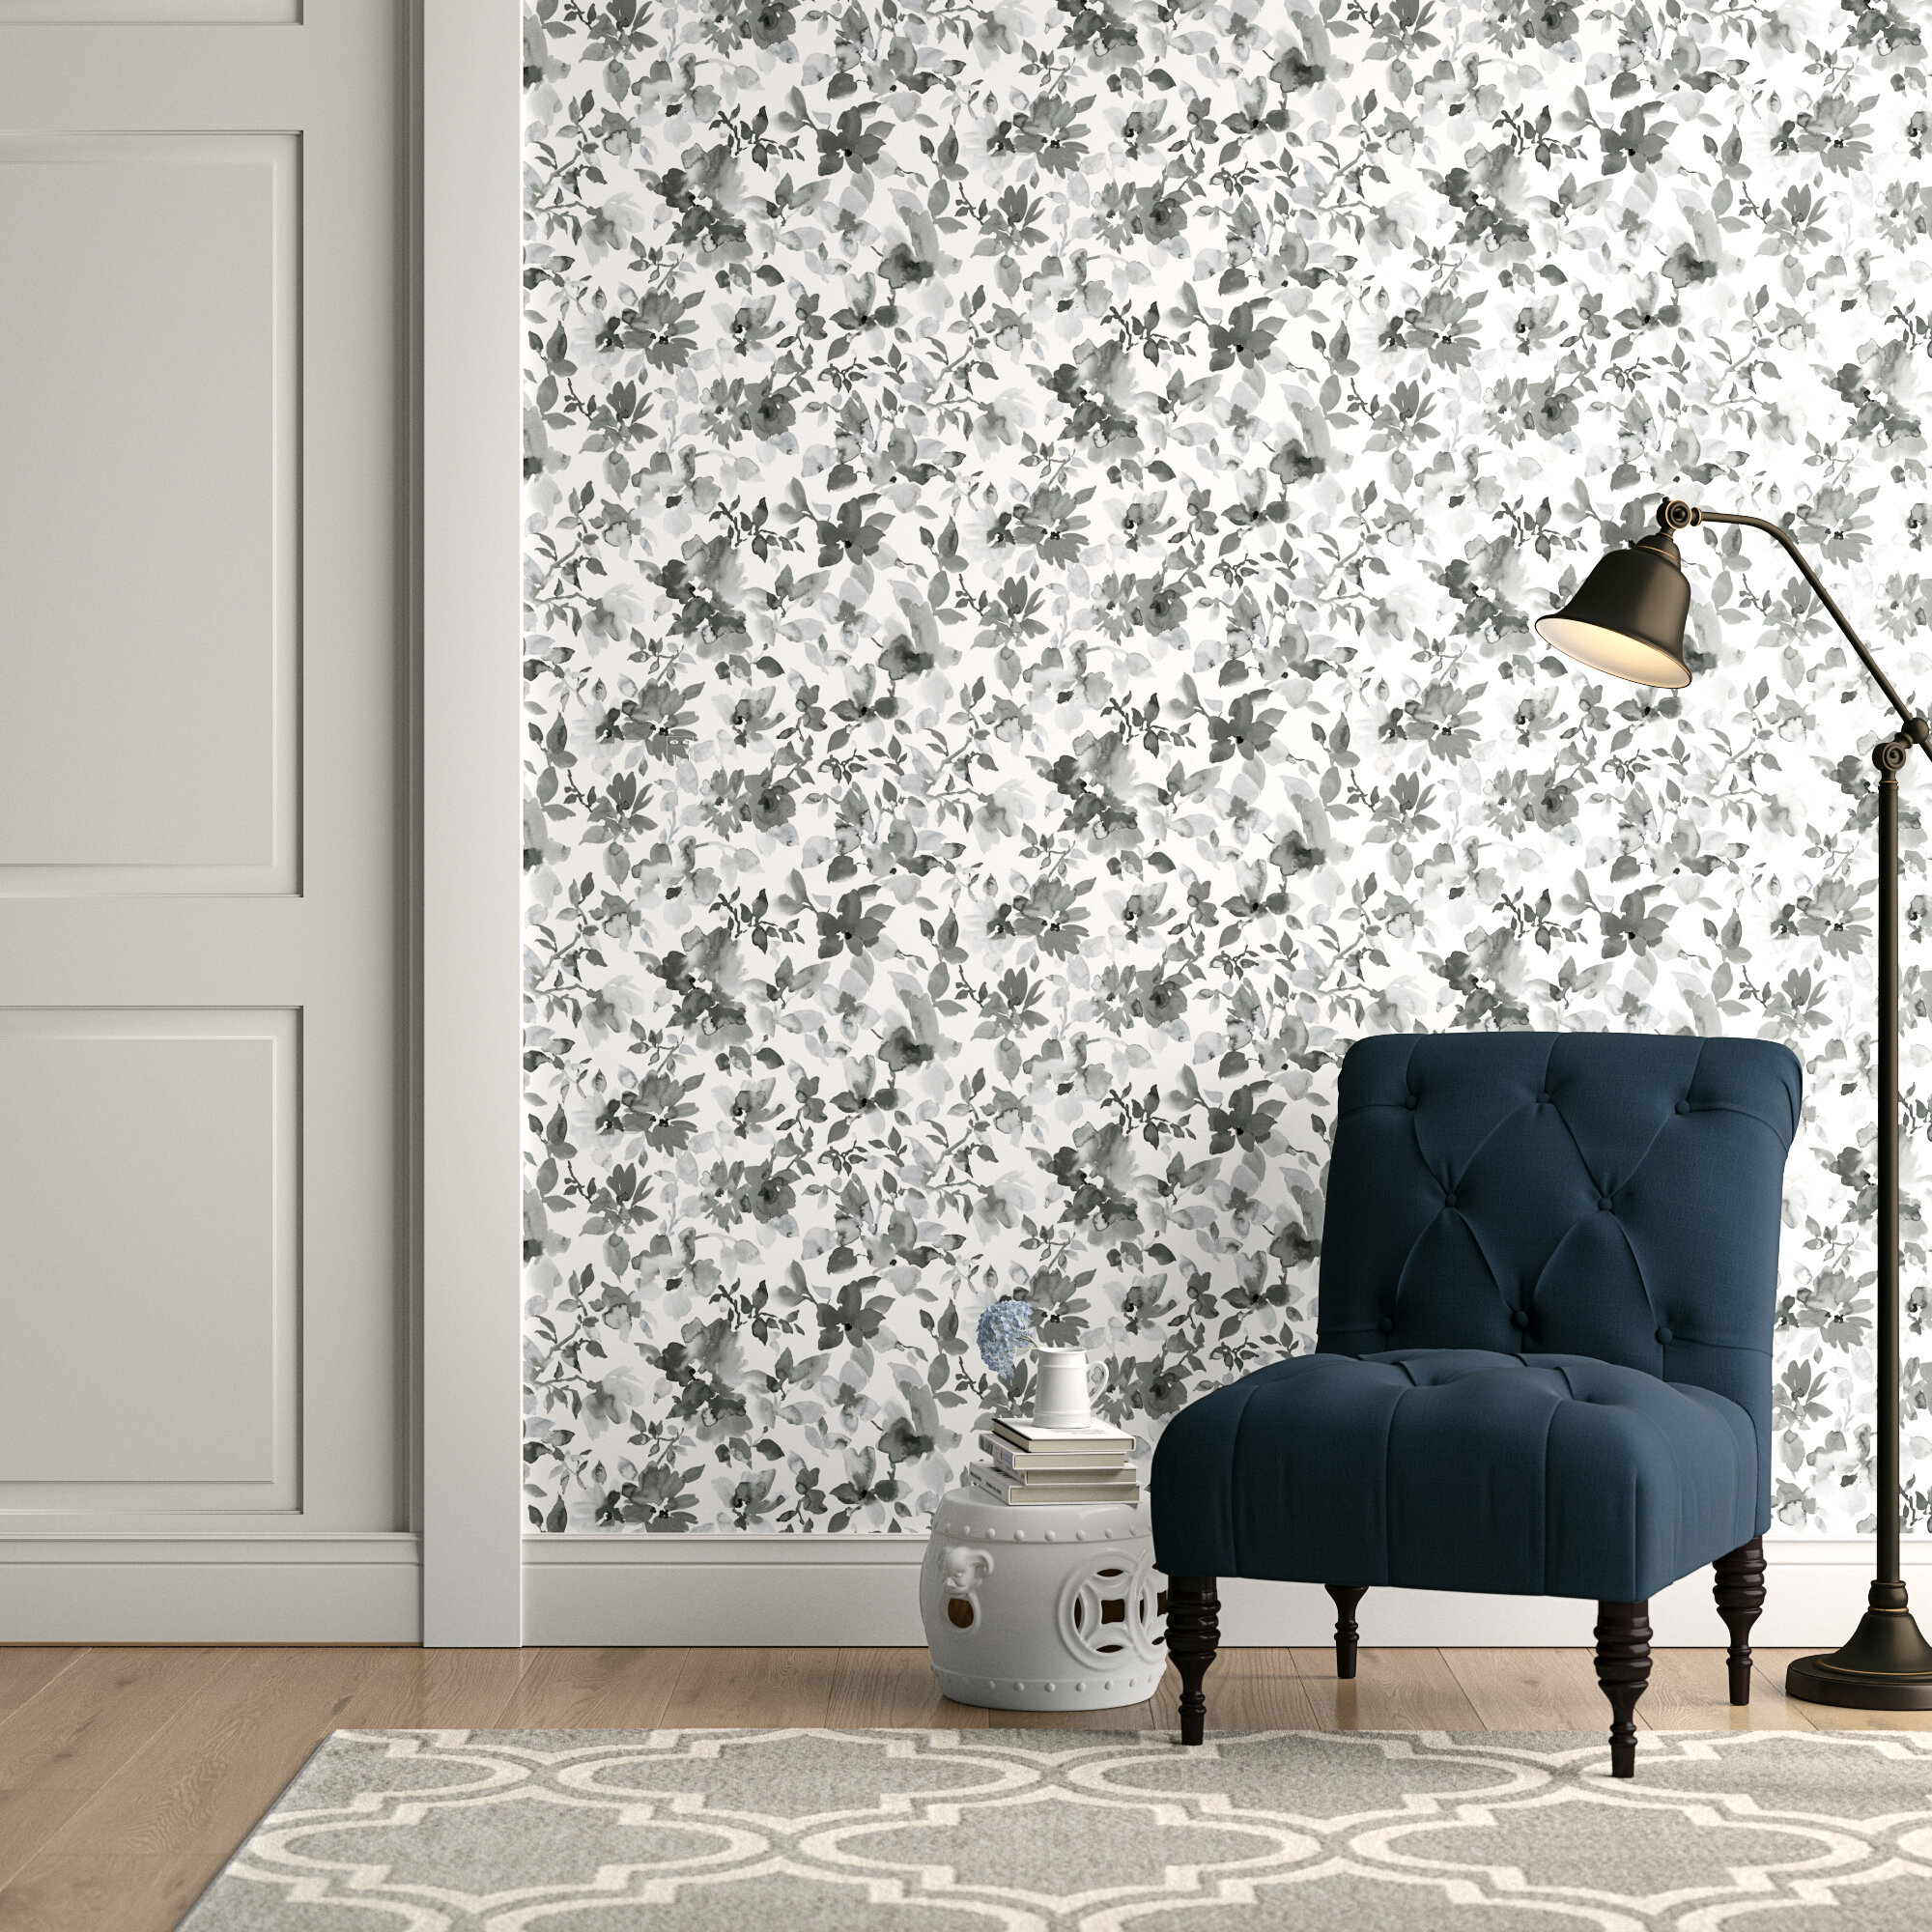 Charlton Home Cao Floral Peel And Stick Wallpaper Roll Reviews Wayfair